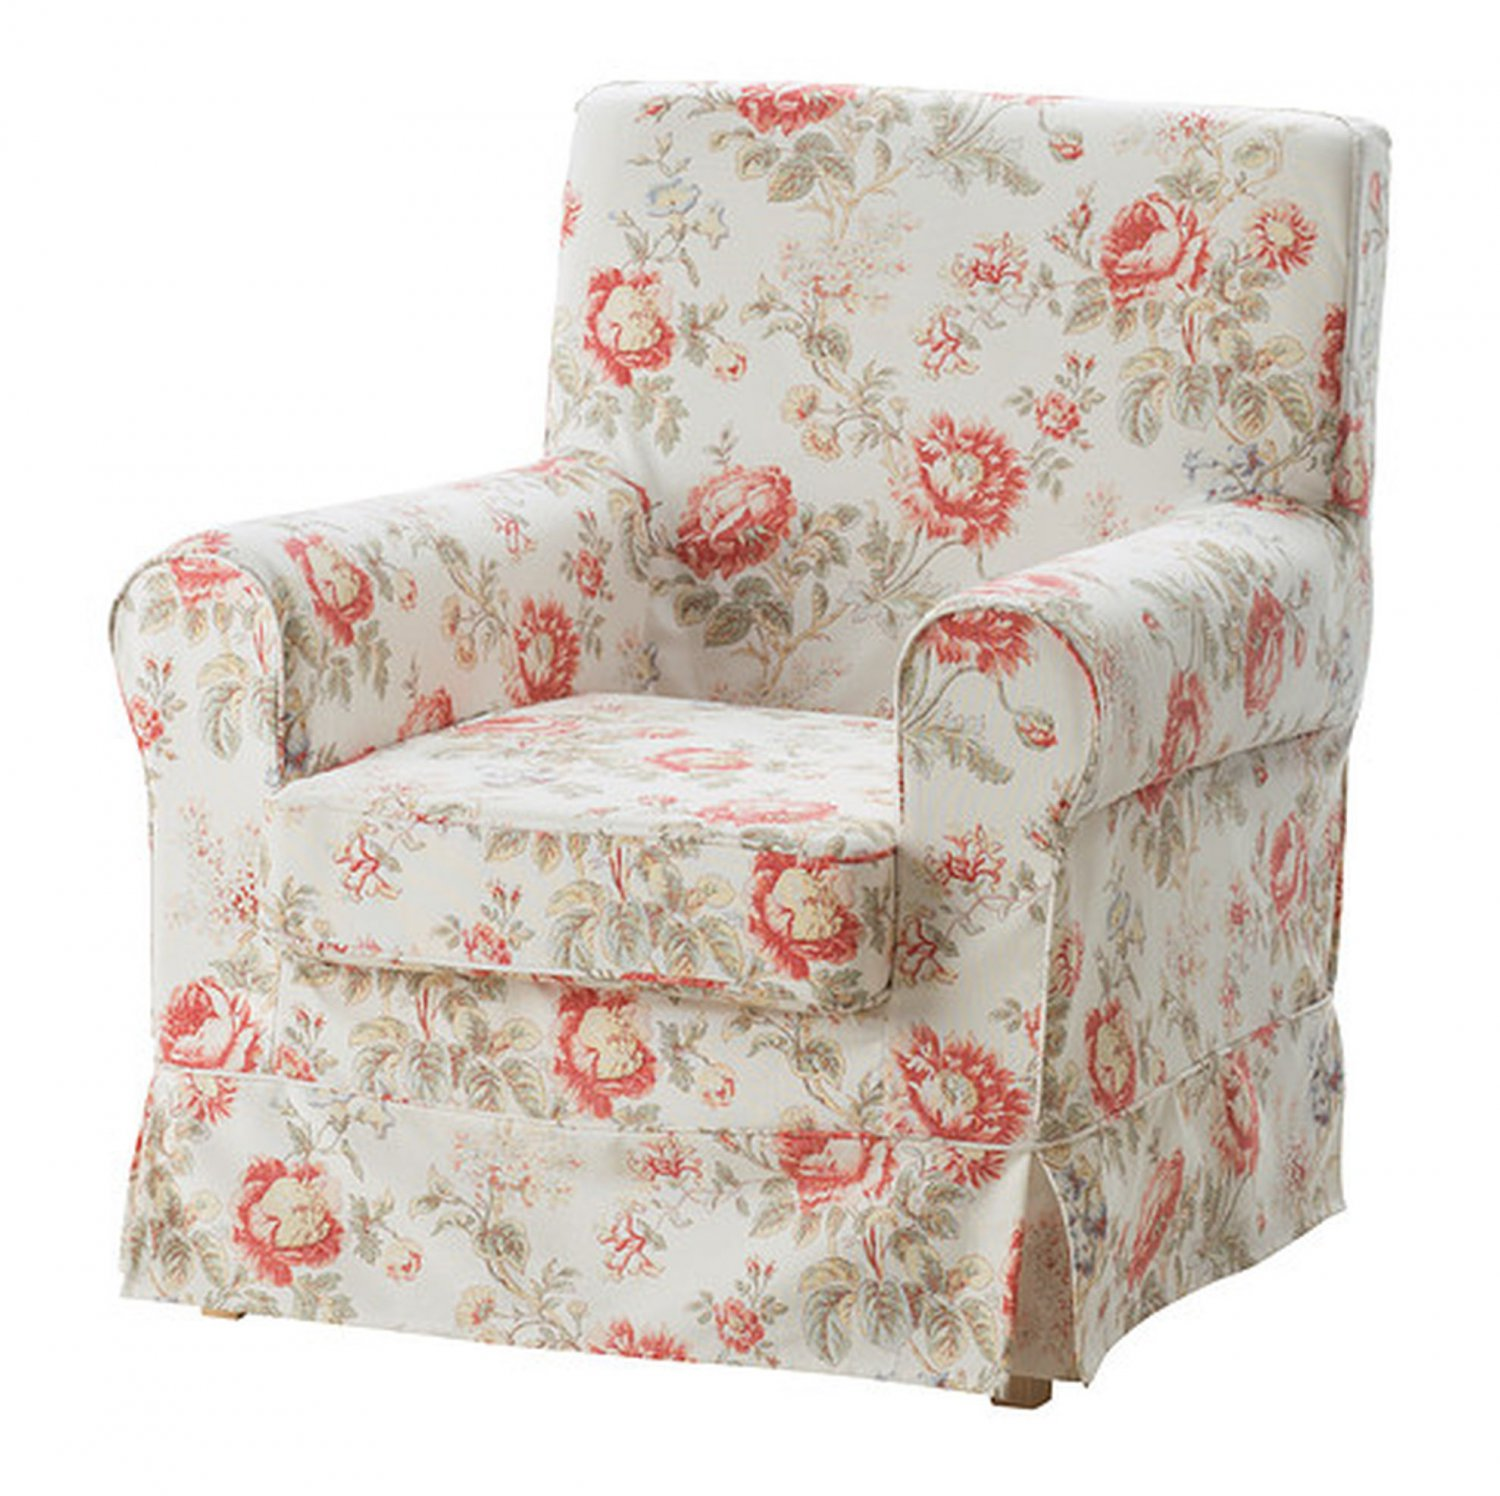 IKEA Ektorp JENNYLUND Armchair SLIPCOVER Chair Cover BYVIK Multi FLORAL Rose Peony Romantic